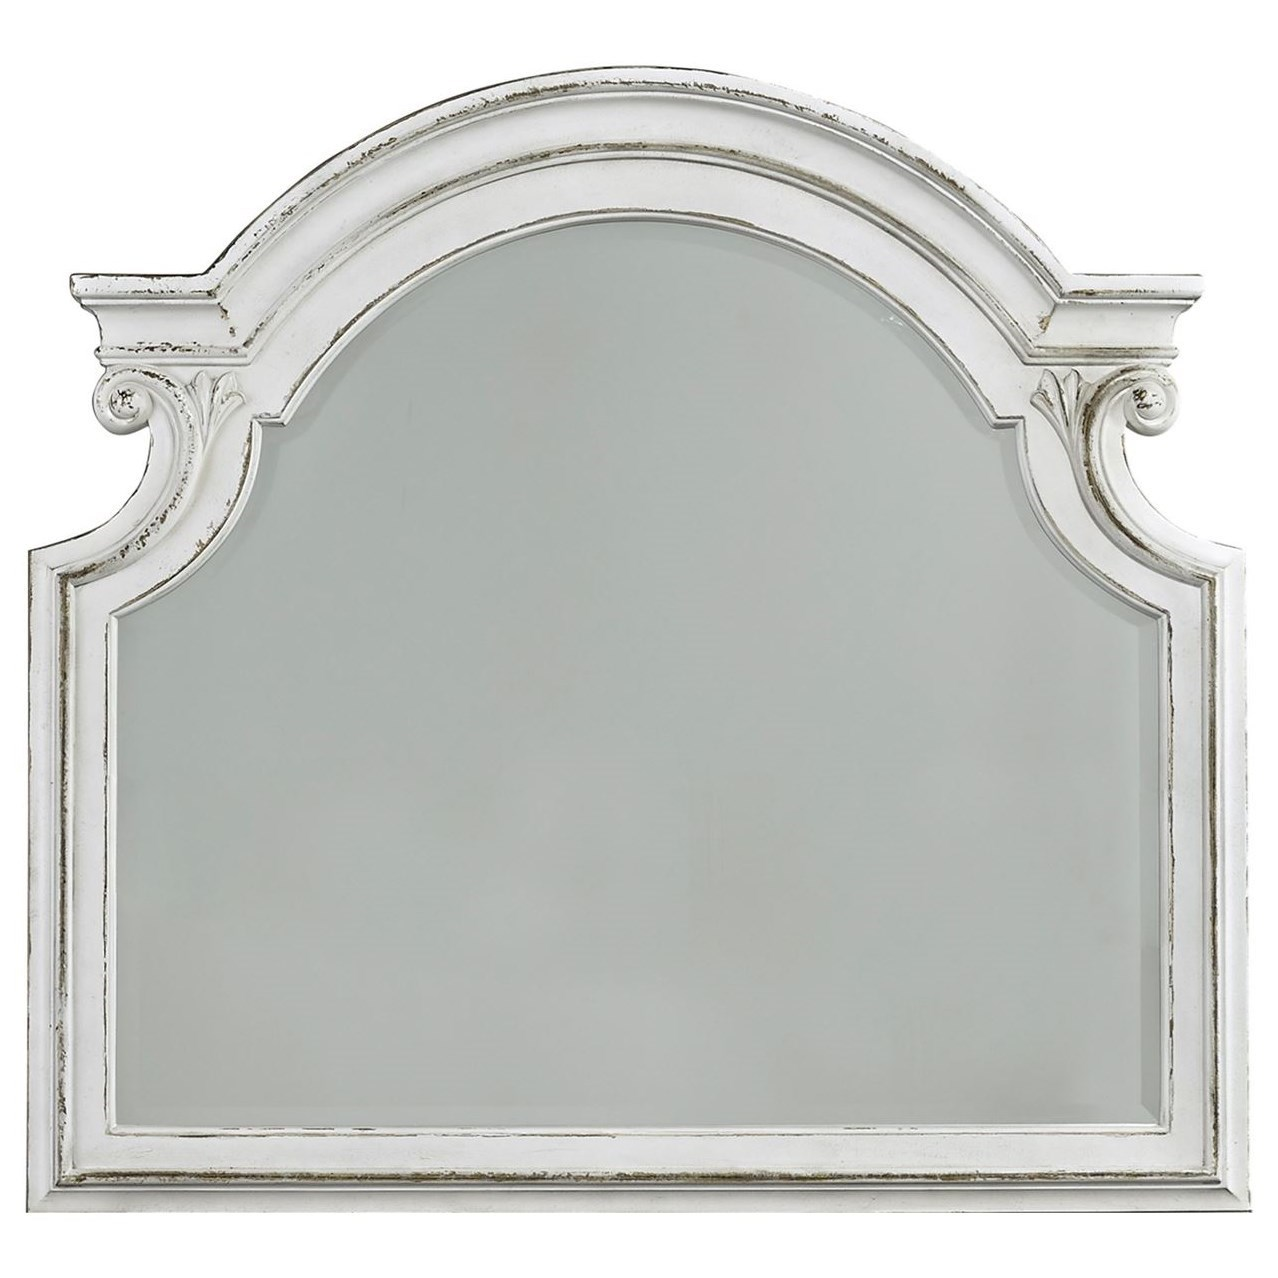 Magnolia Manor Mirror with Wood Frame by Liberty Furniture at Northeast Factory Direct